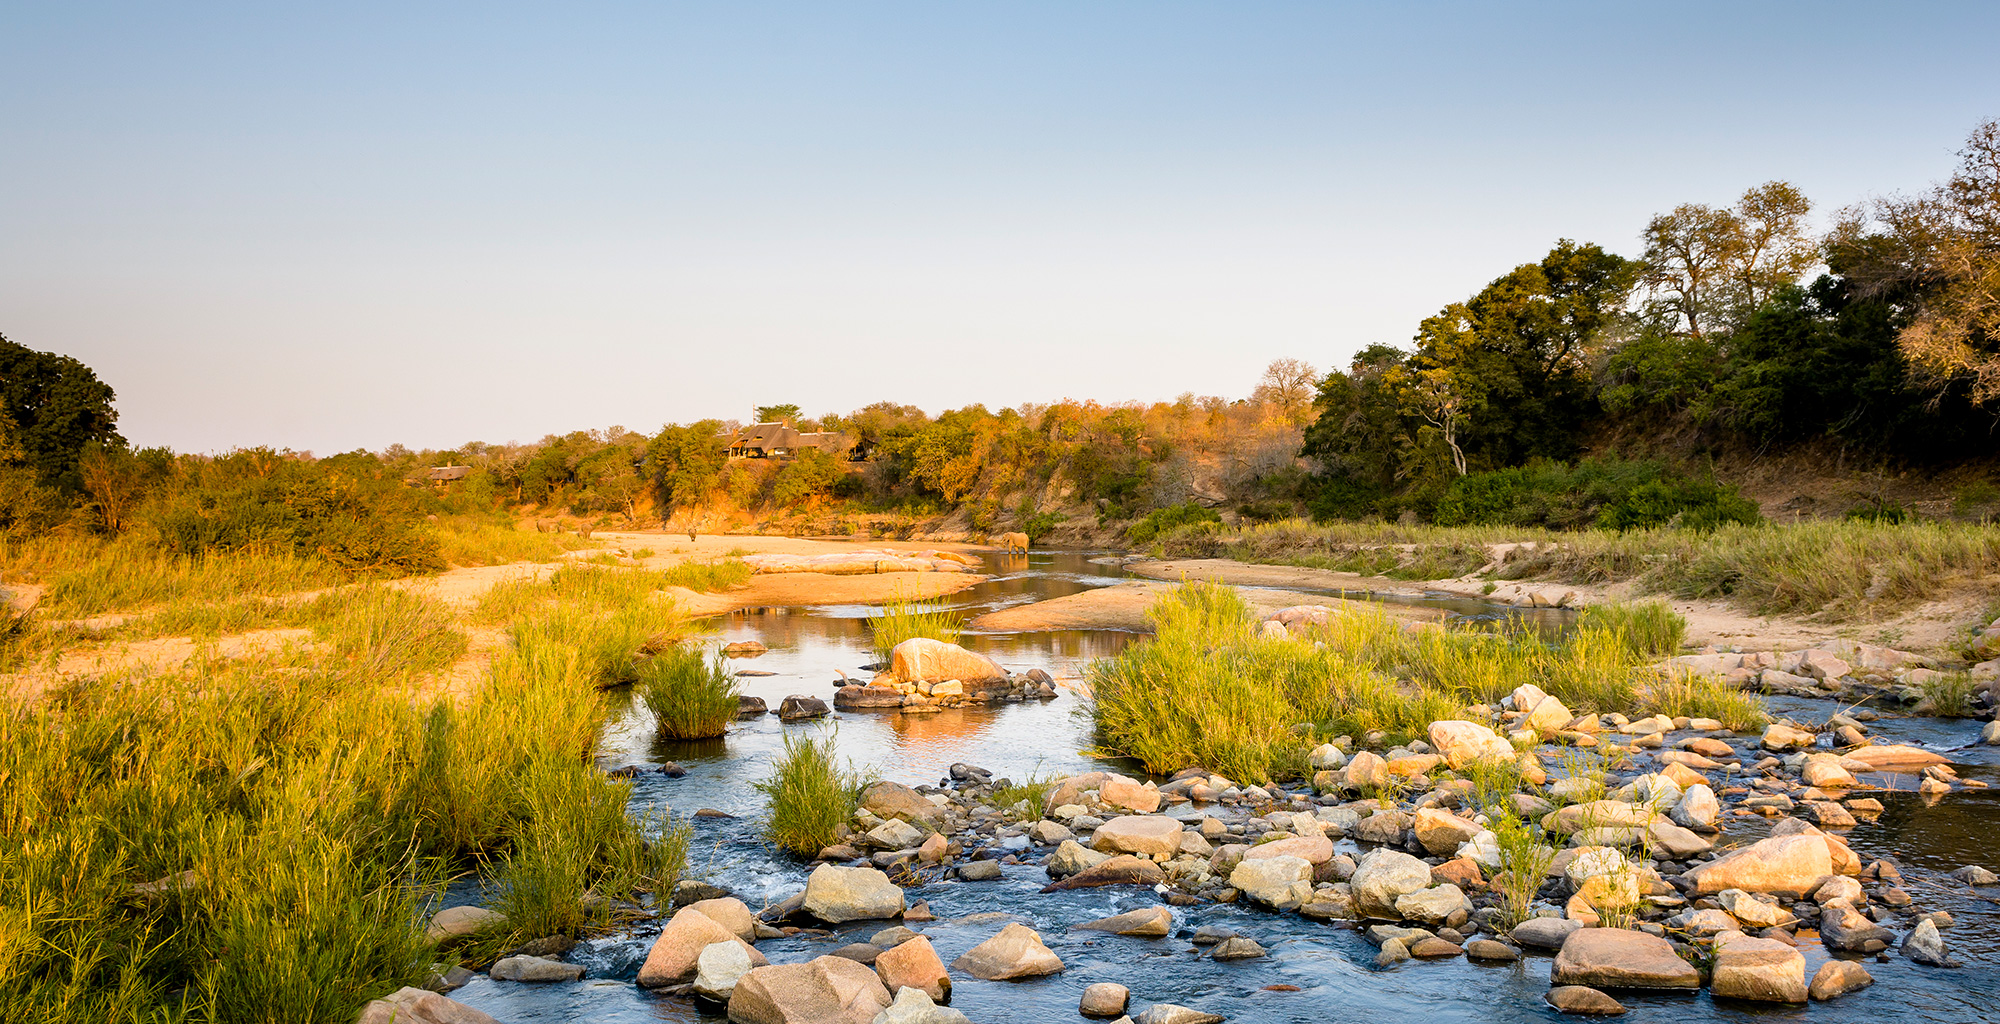 South-Africa-Singita-Ebony-River